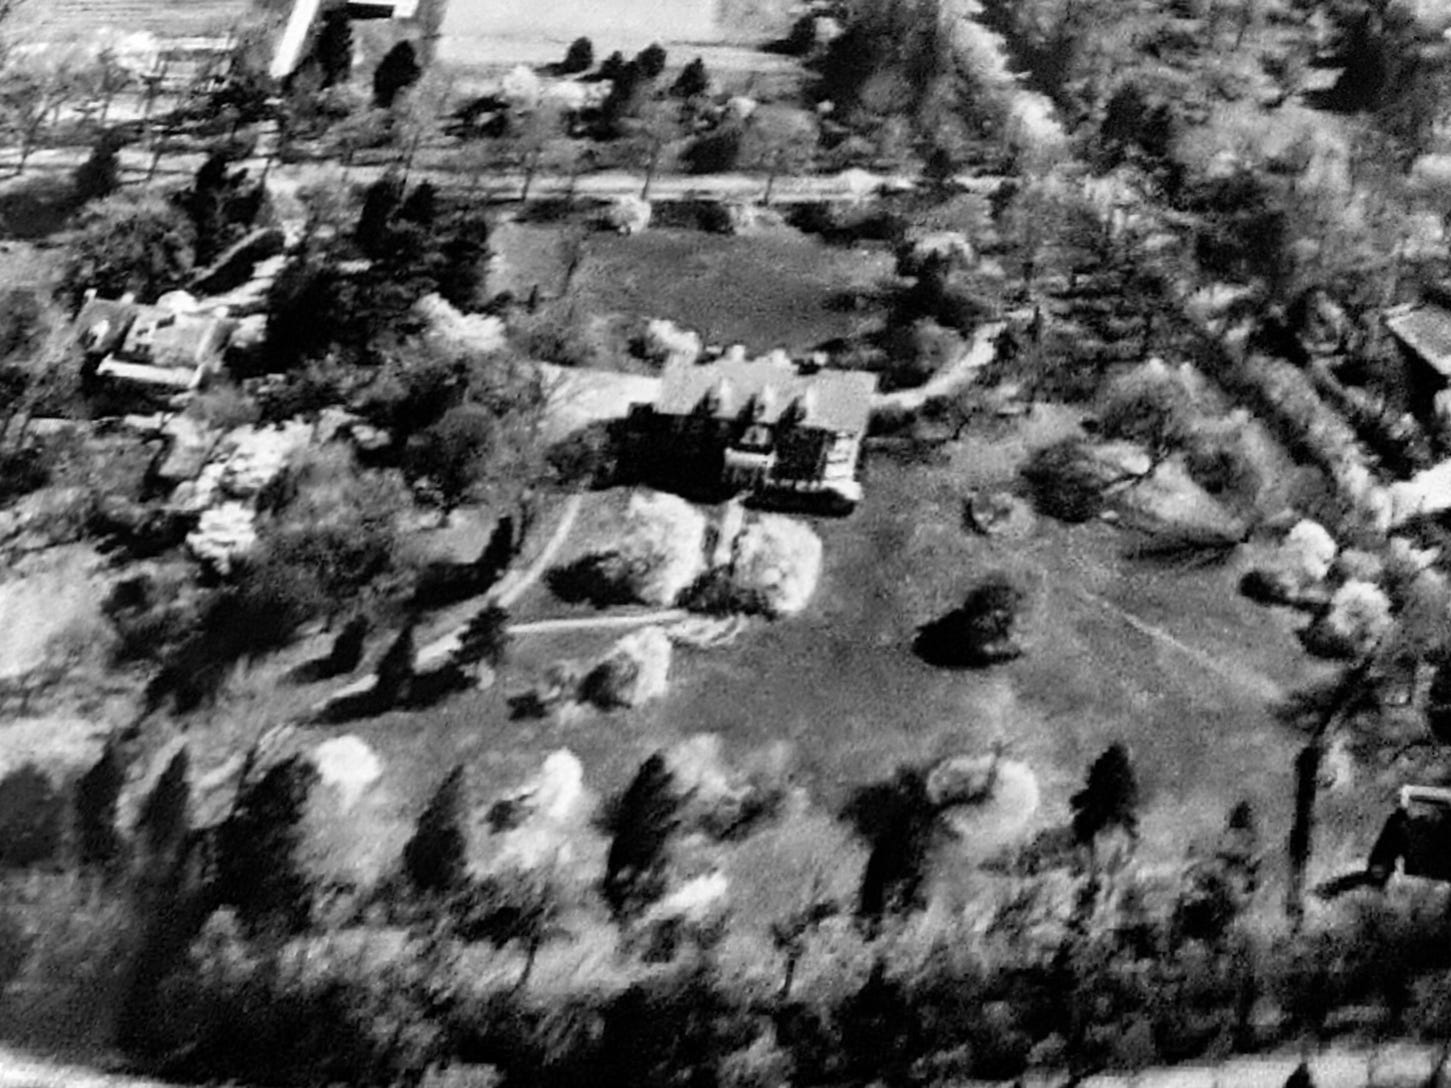 An ariel shot shows the Grantley Hills mansion, before development around it, near York College in the 1930s. The photo includes the ornamental cherry tree.